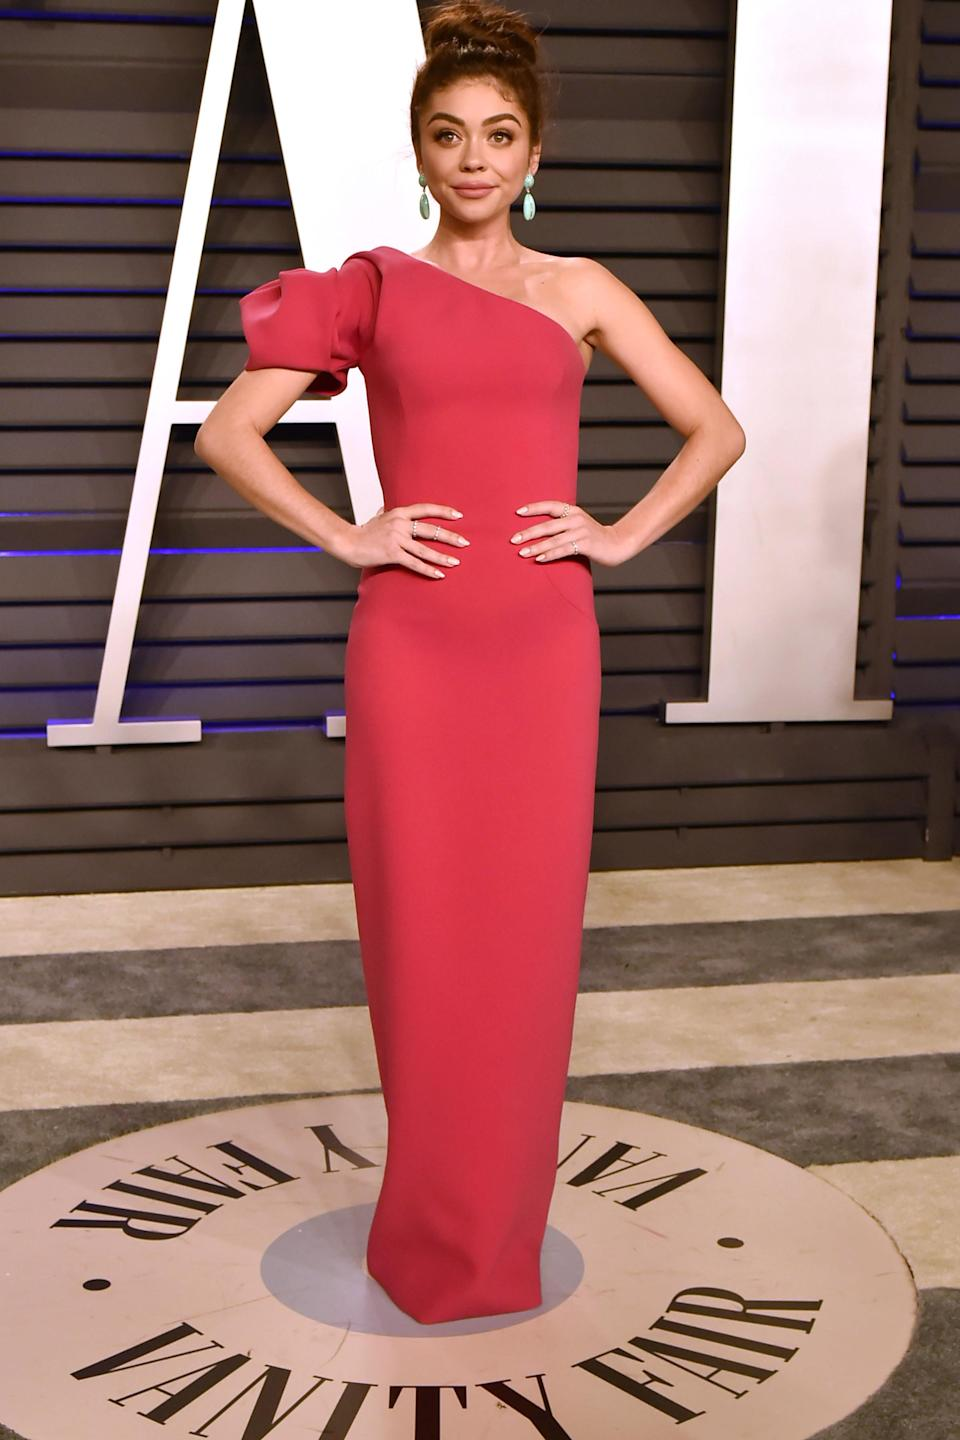 Sarah Hyland admits to wearing two pairs of shape wear to the Oscars. (Photo: Getty Images)